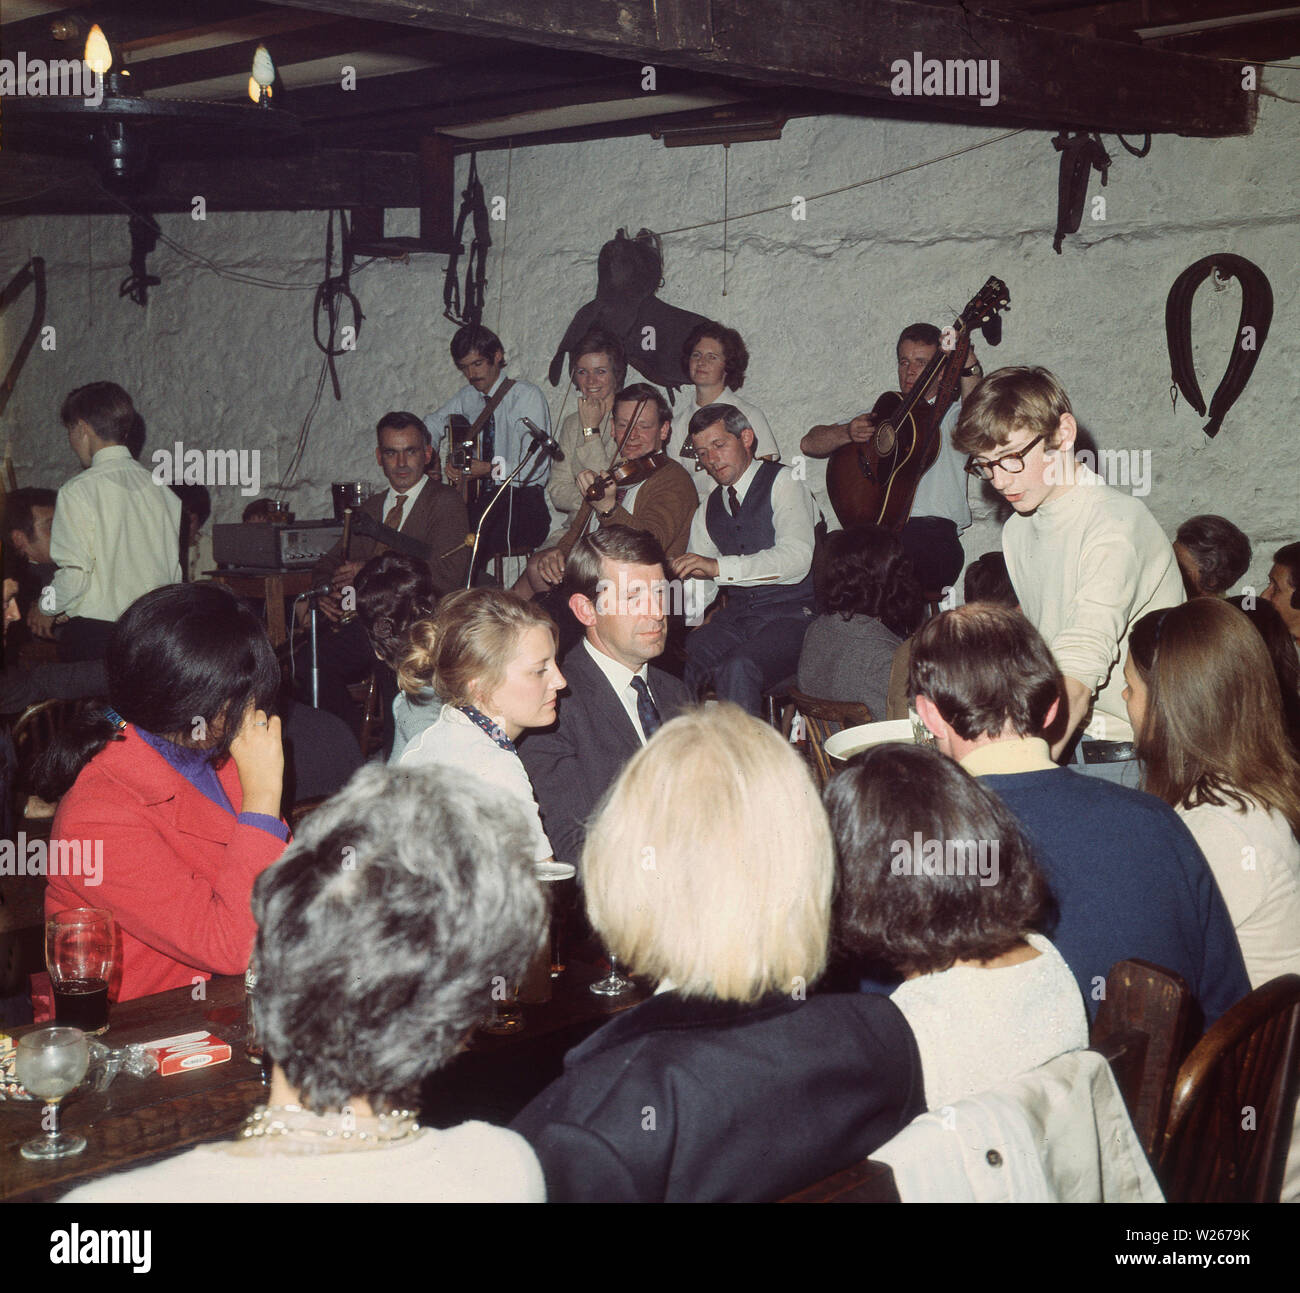 1960s, historical, In a Irish country pub, Ireland, people enjoying a drink and the music of a collective or group of musicans playing together on a small stage. - Stock Image